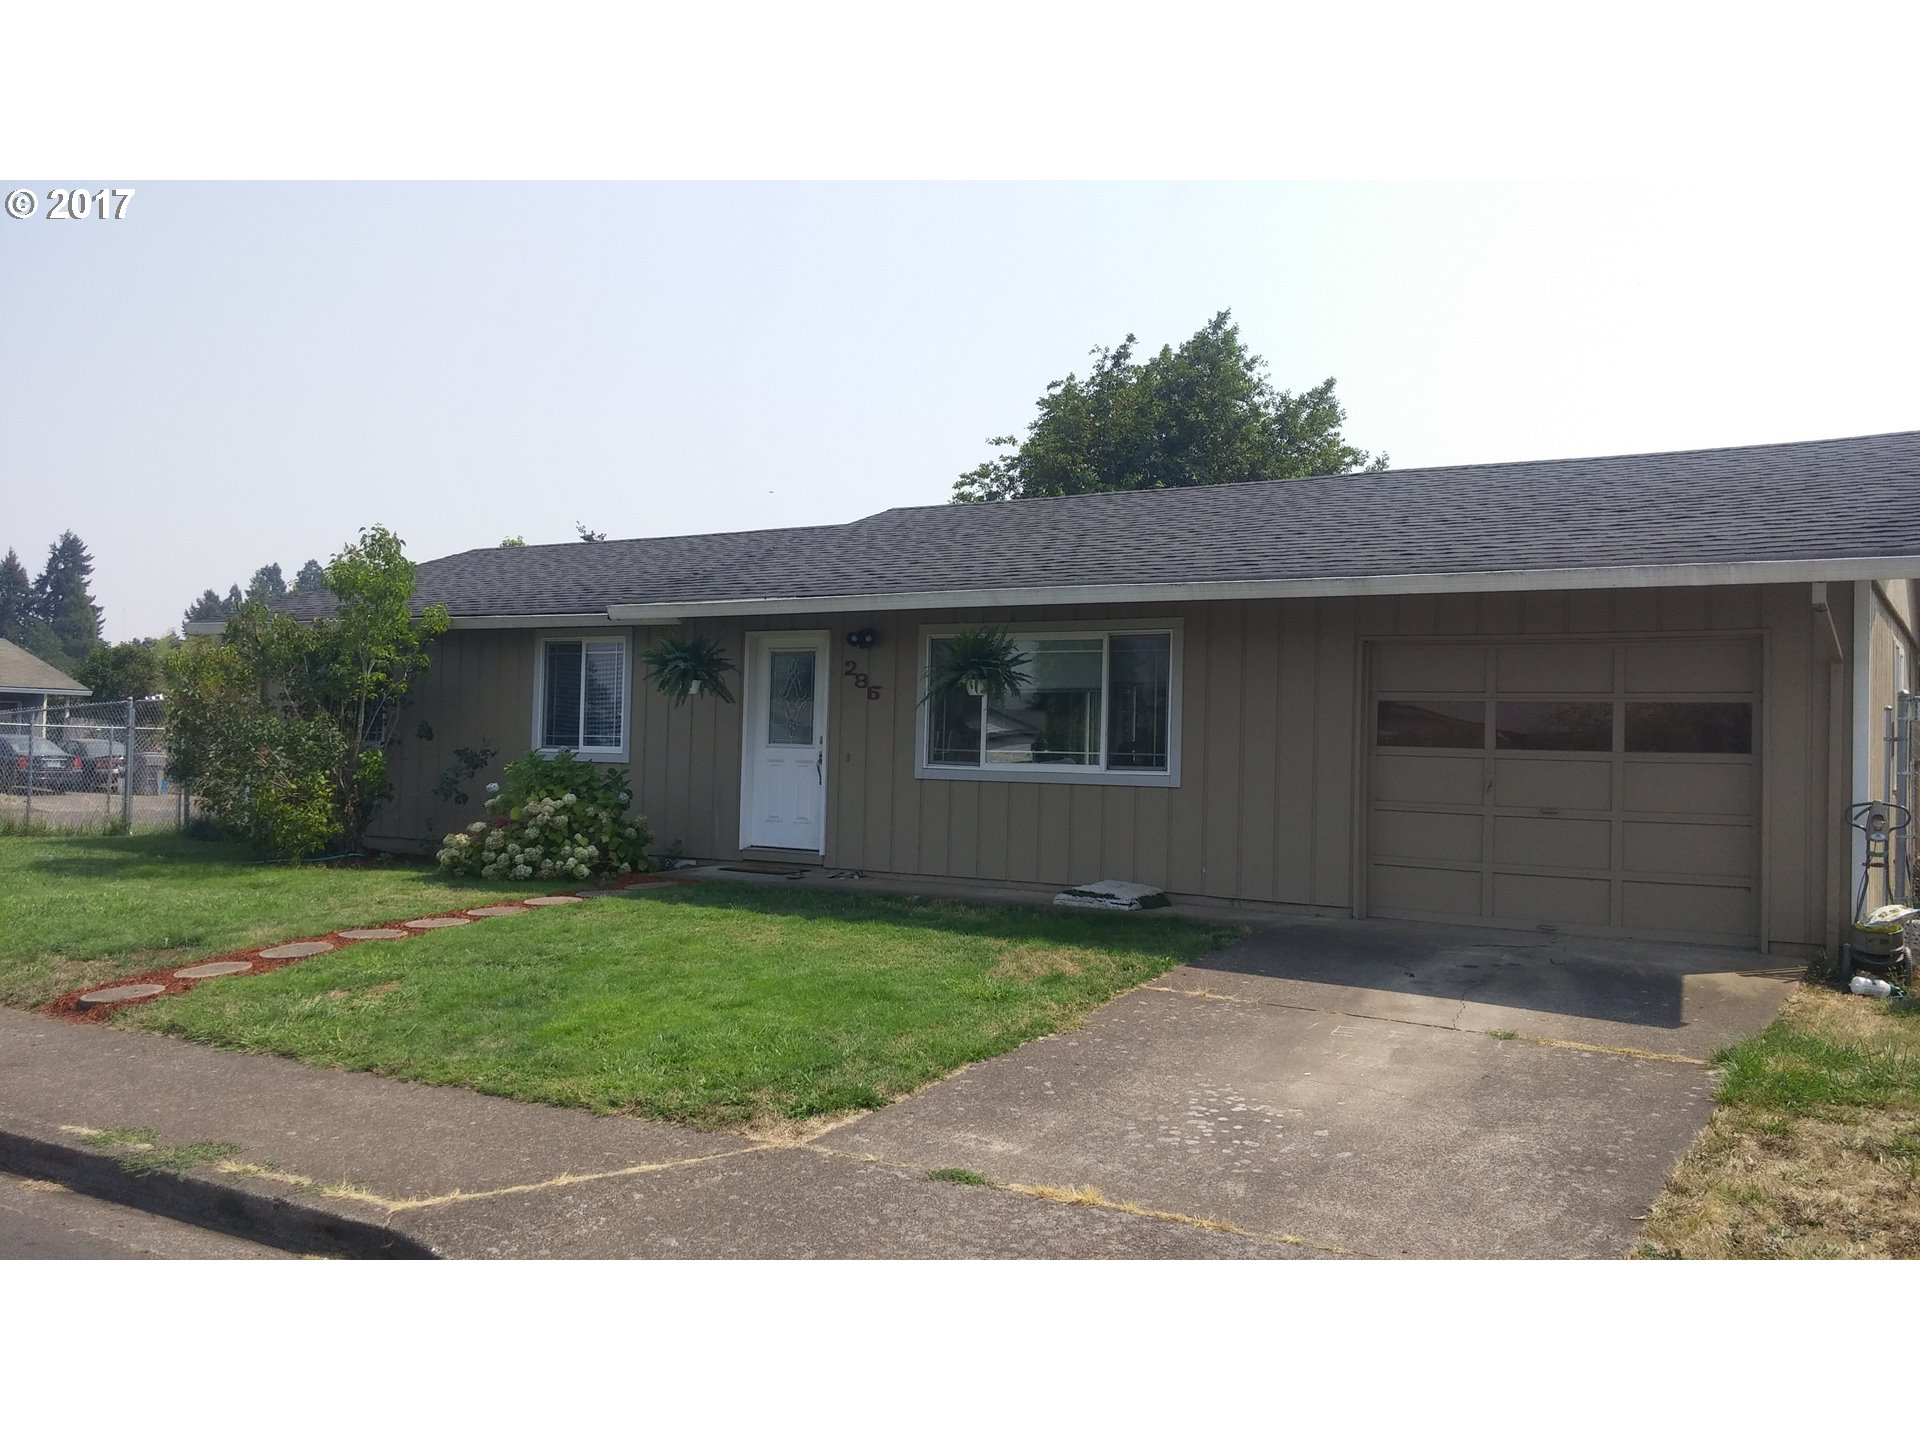 285 CRONA ST, Junction City, OR 97448